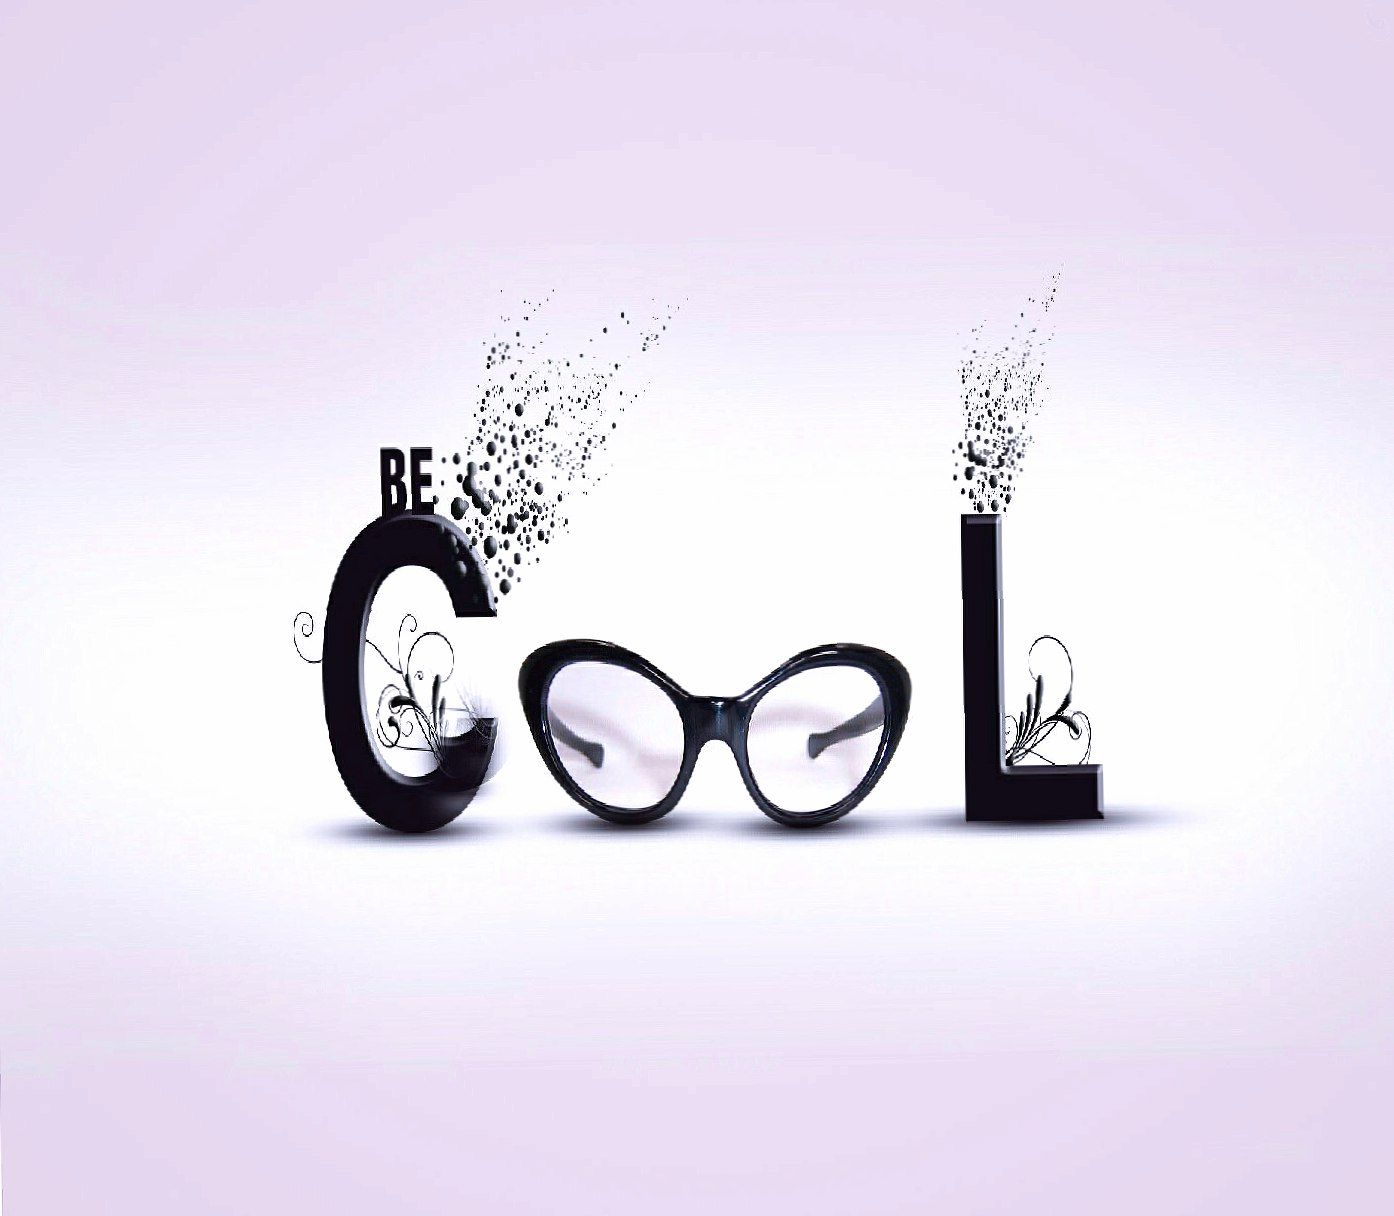 Be cool wallpapers HD quality